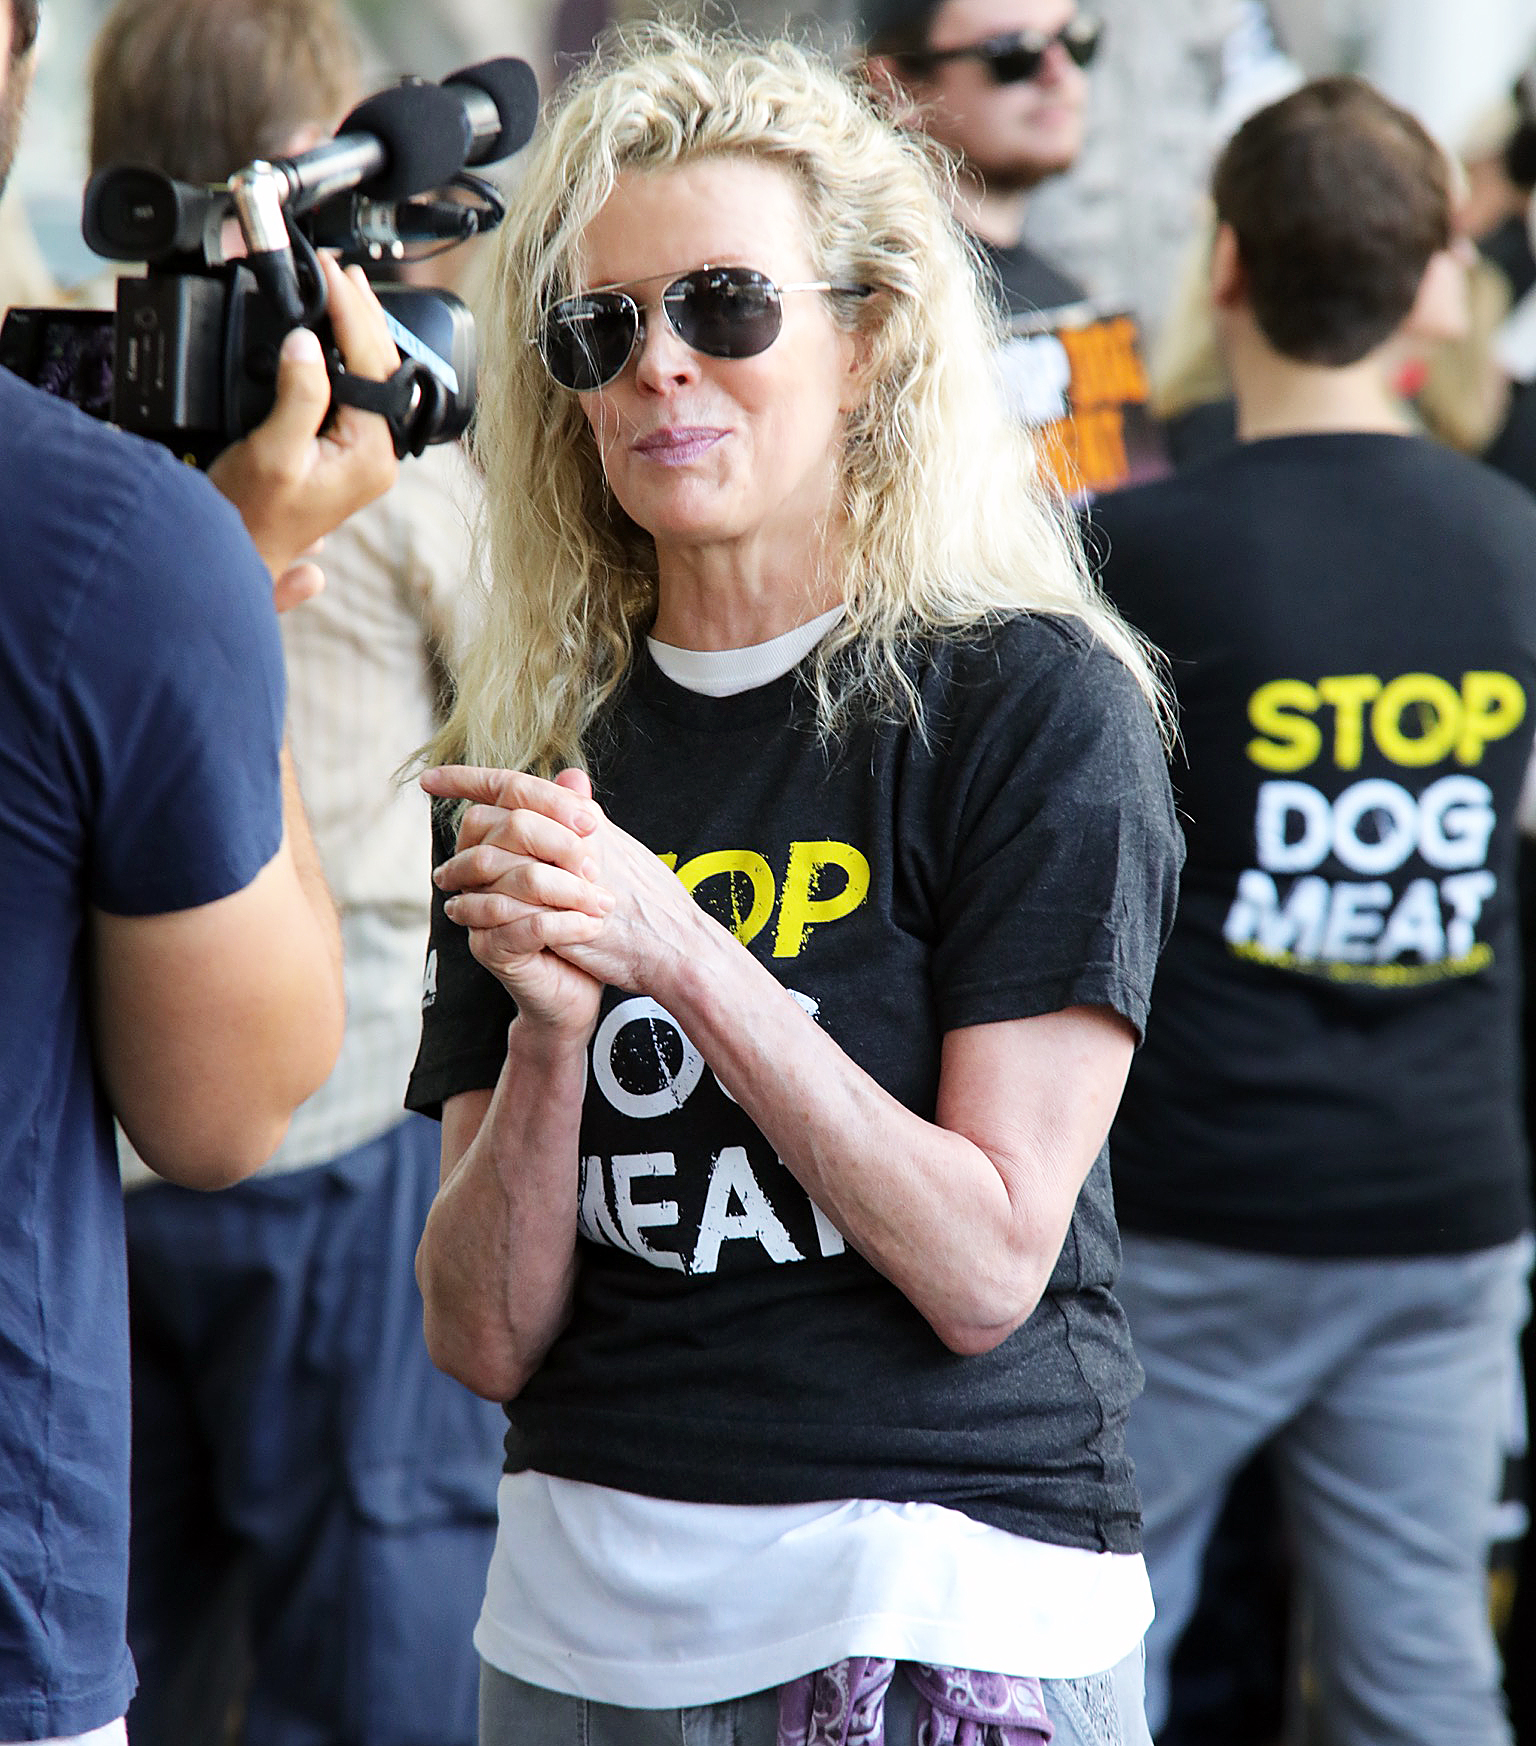 Kim Basinger Justin Bieber Hailey Baldwin Already Picked Bridal Party - Kim Basinger attends a silent demonstration to end the dog meat trade of South Korea on July 17, 2018 in Los Angeles, California.